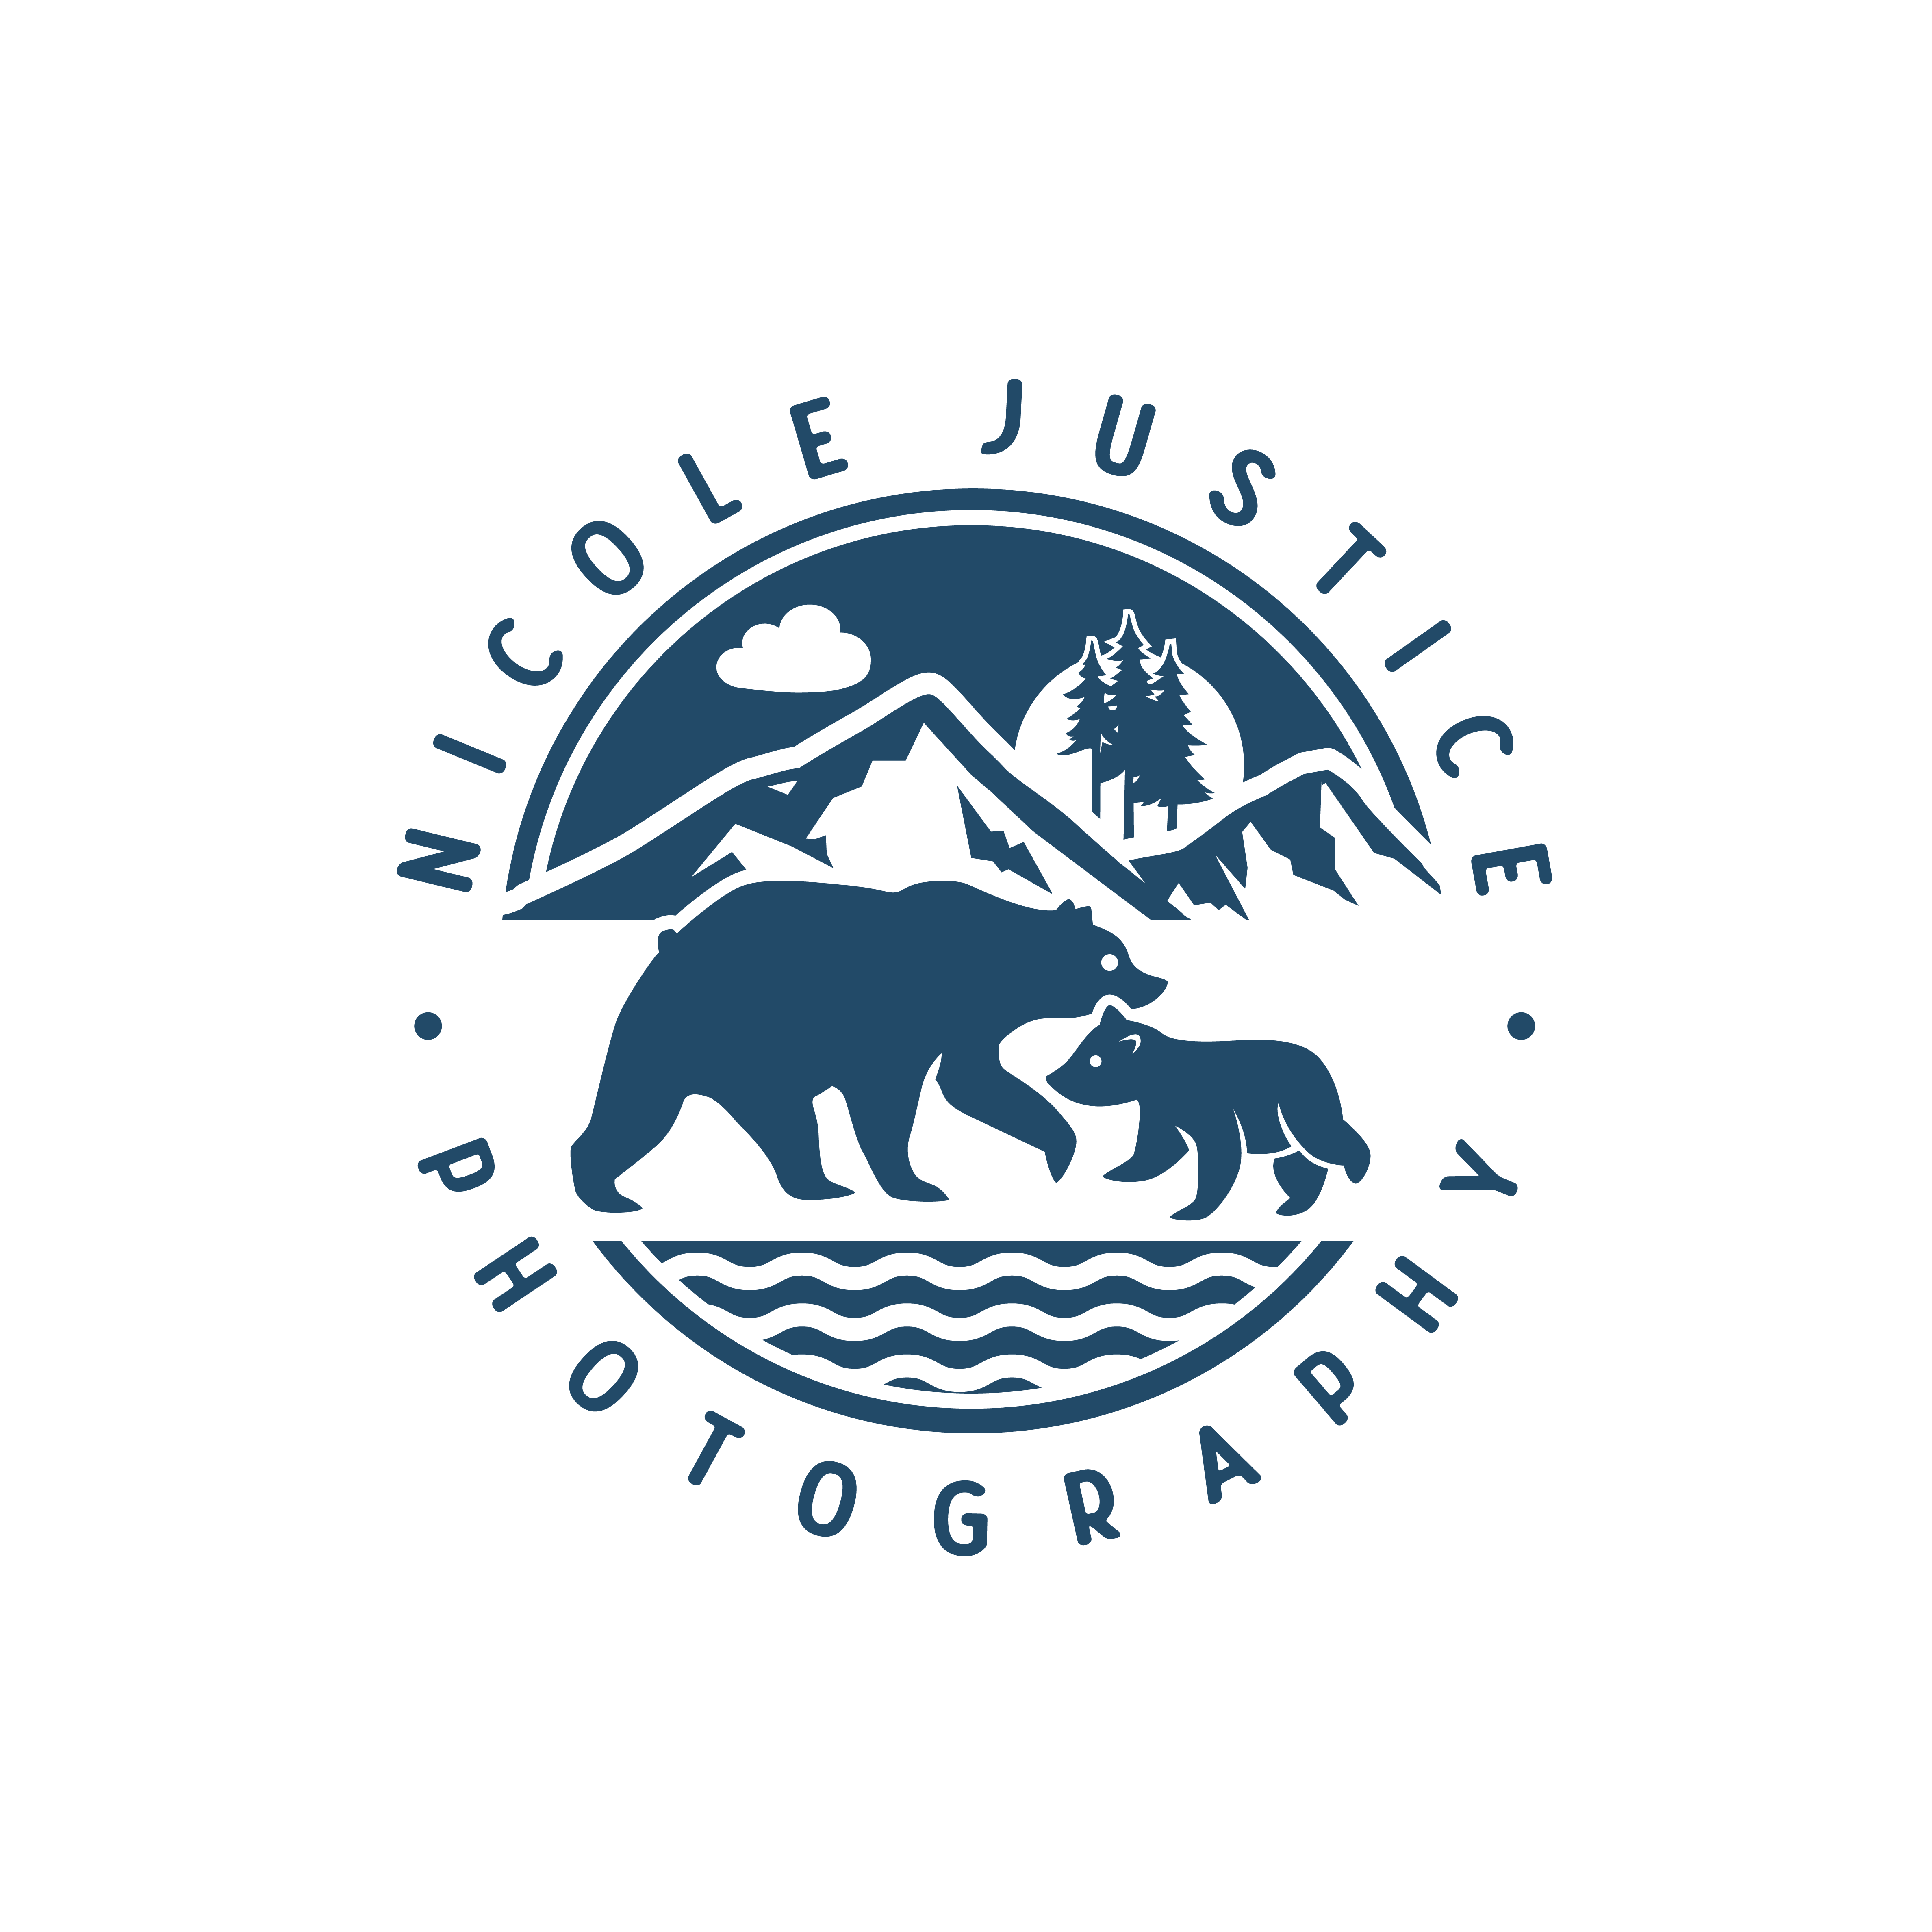 Design an awesome logo for my photography business so I can hit the ground running!